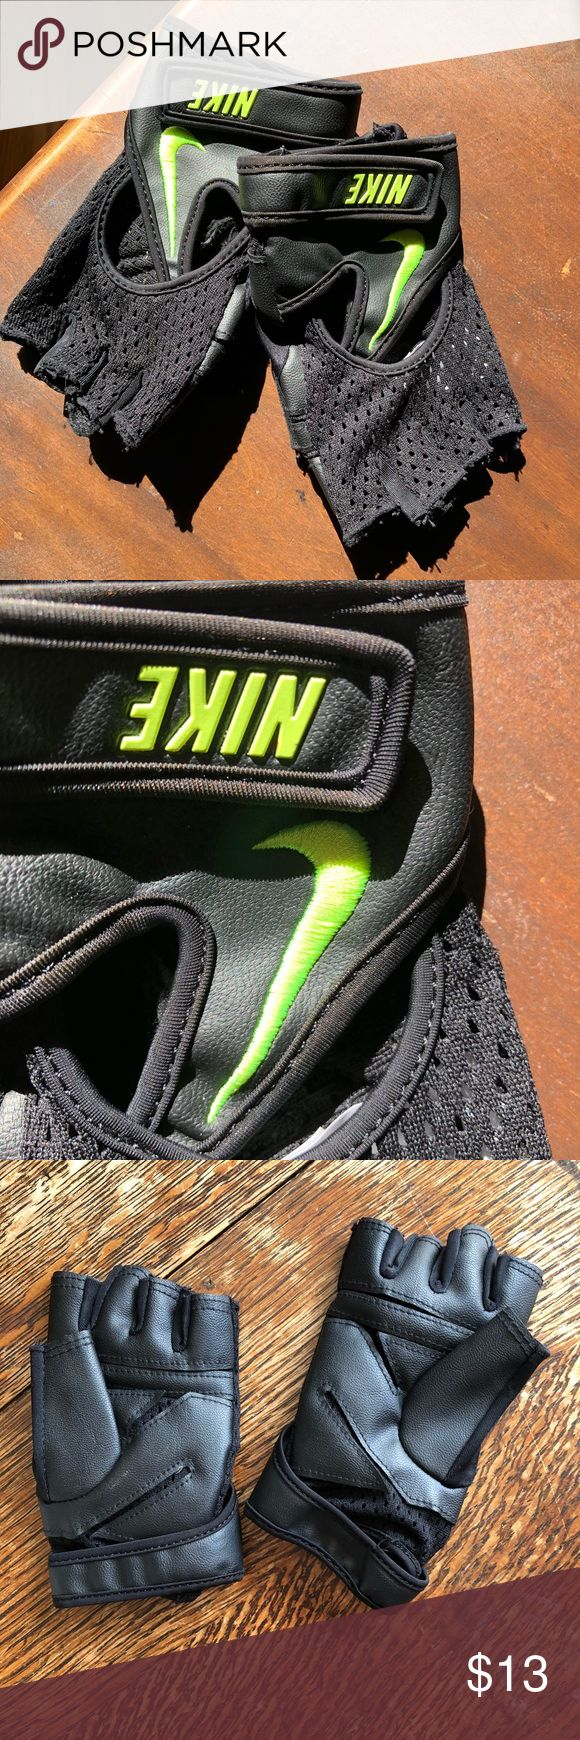 NIKE workout gloves Worn once, great condition! NIKE workout gloves. Super cute! Nike Other